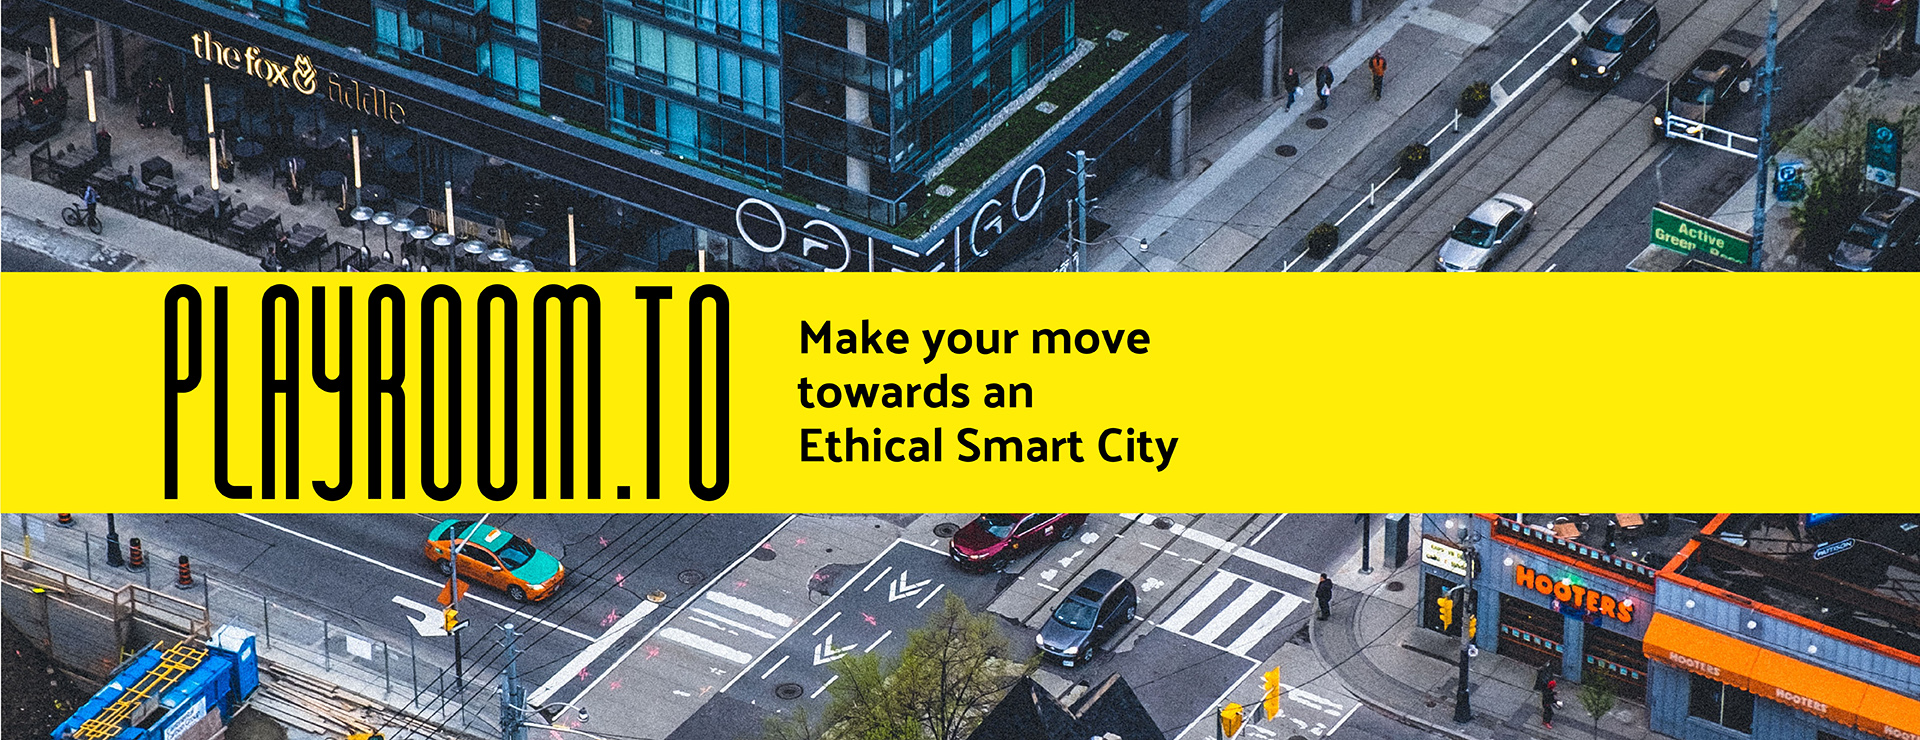 Toward an Ethical Smart City